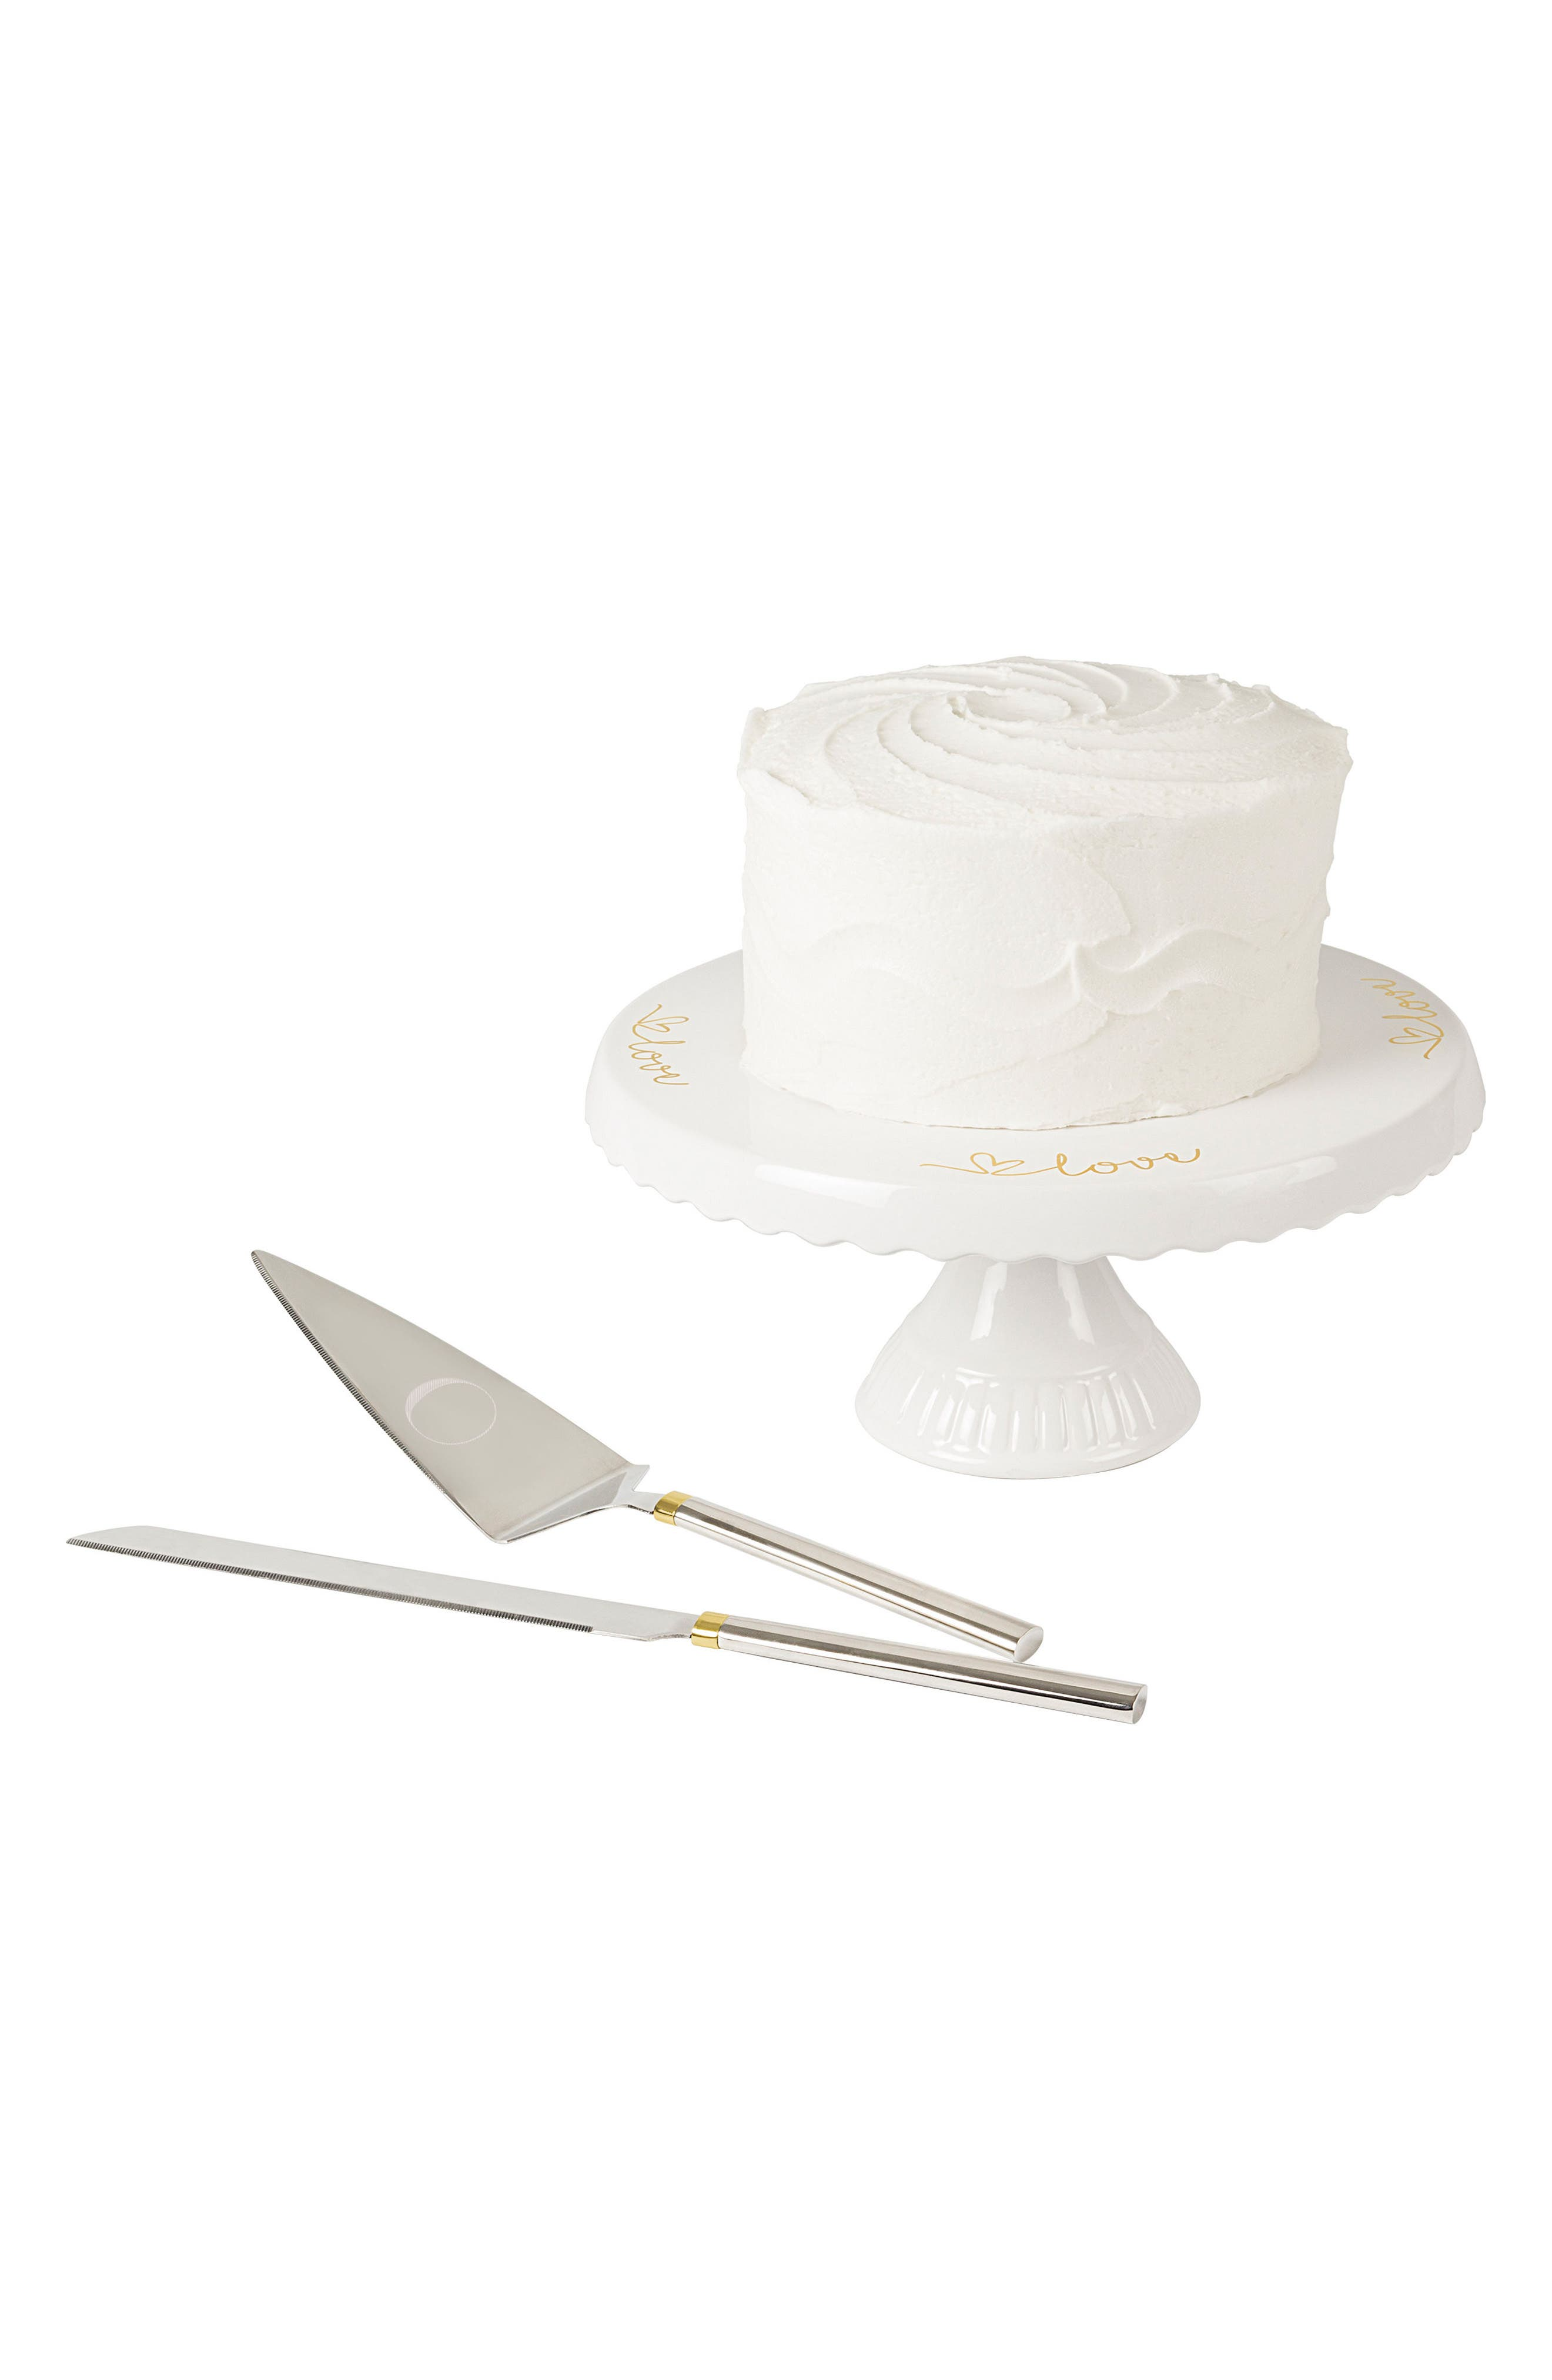 Love Monogram Cake Stand & Server Set,                             Main thumbnail 16, color,